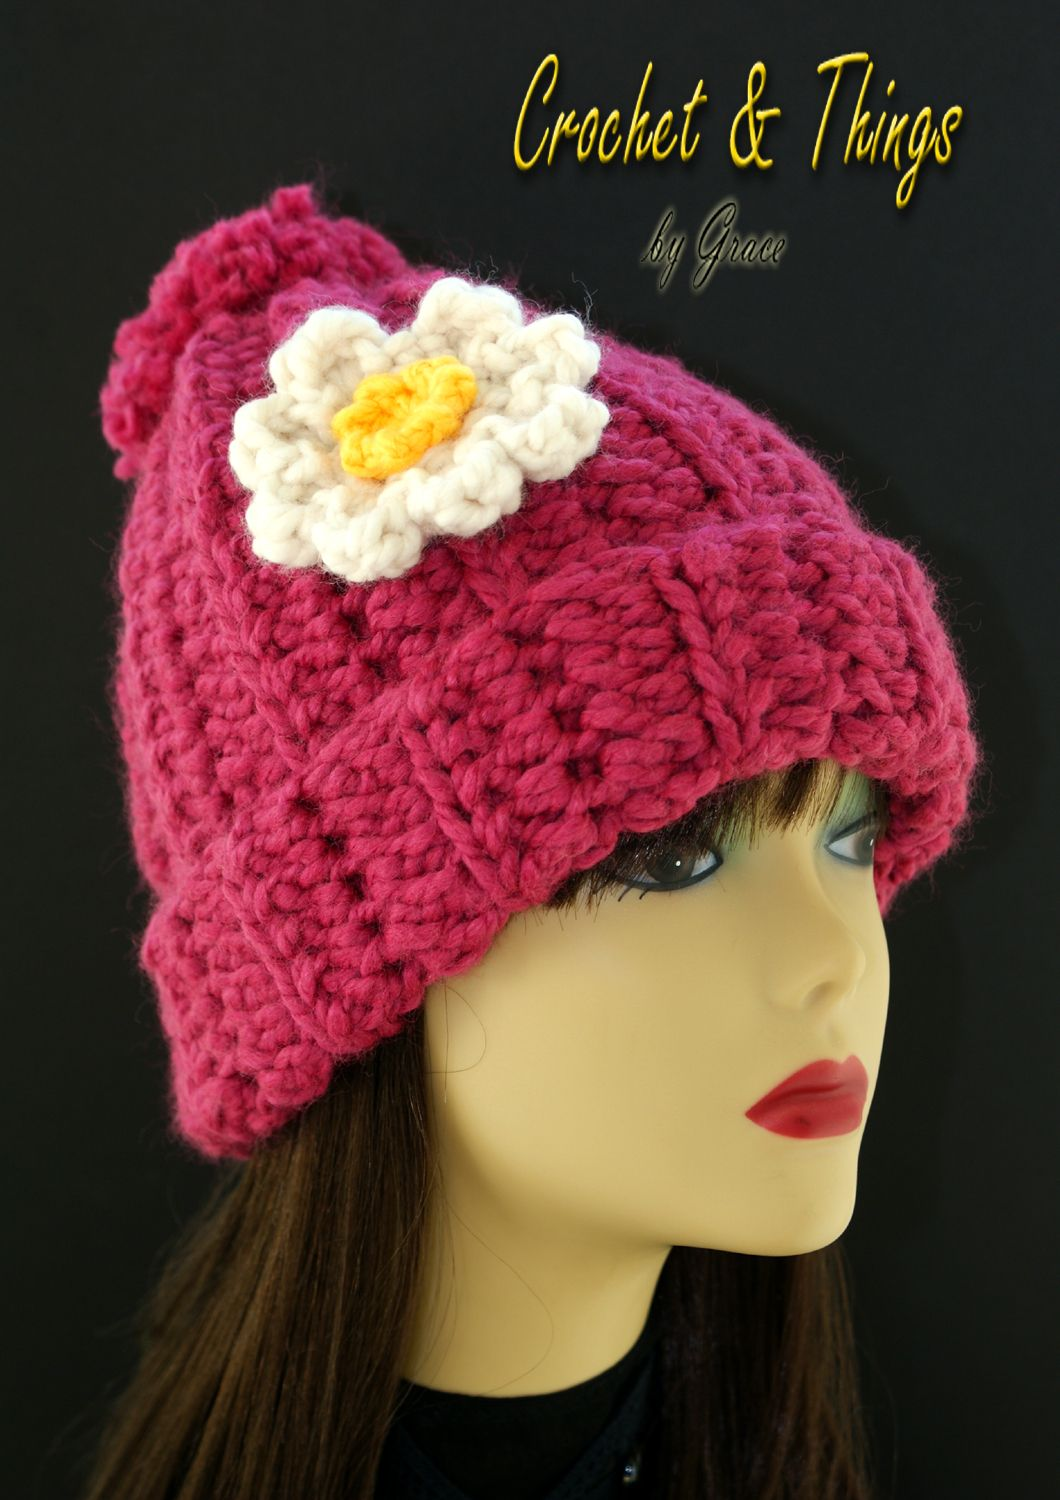 Beanie hat w/ flower applique in raspberry color